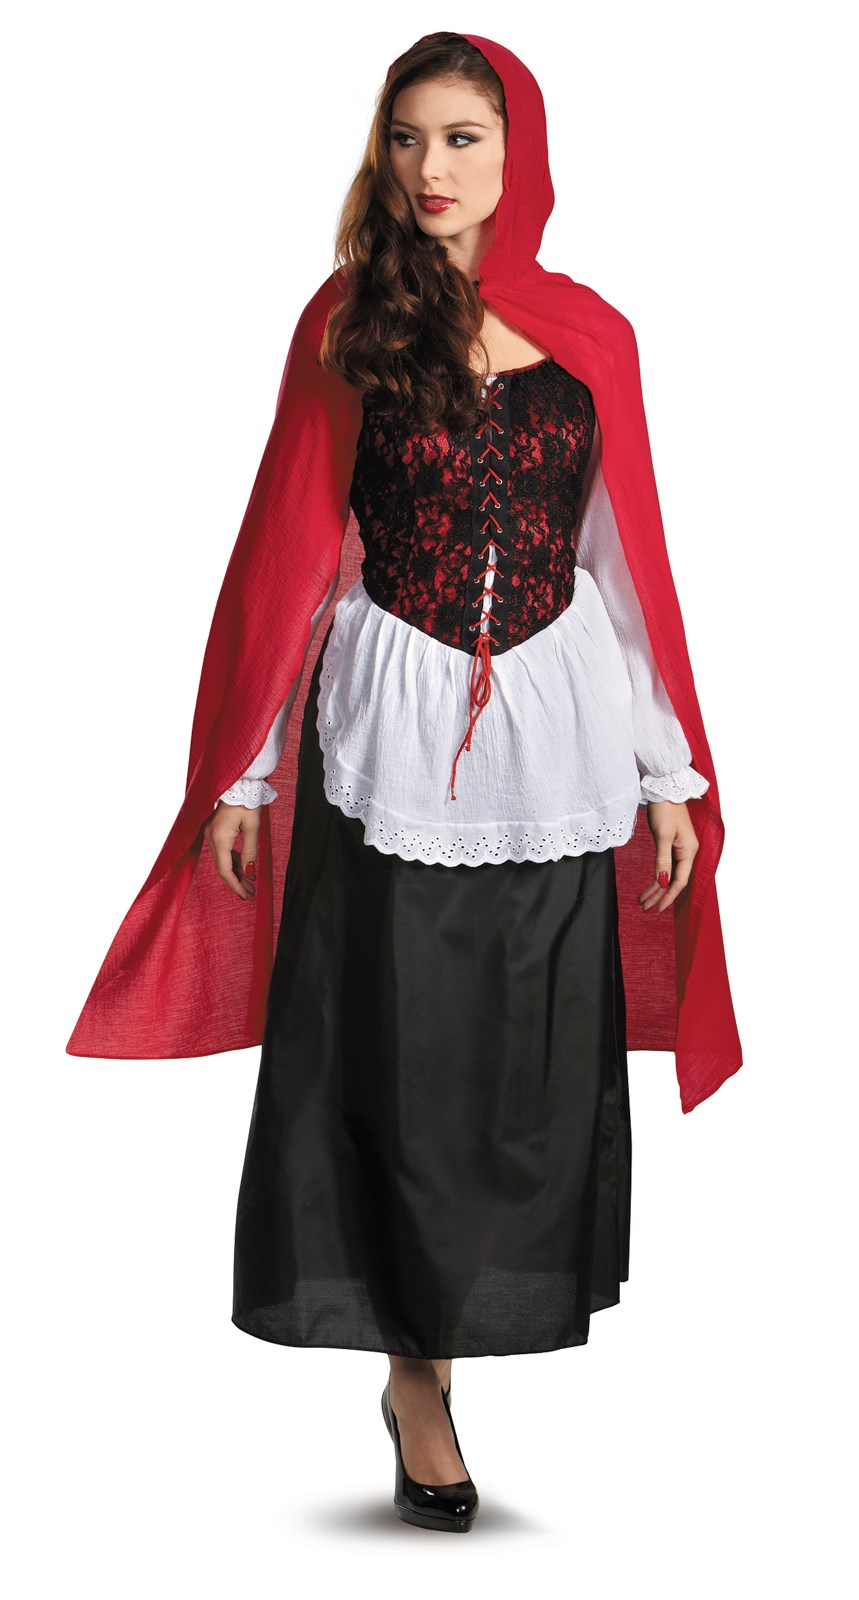 Red Riding Hood Deluxe Adult Costume | BuyCostumes.com